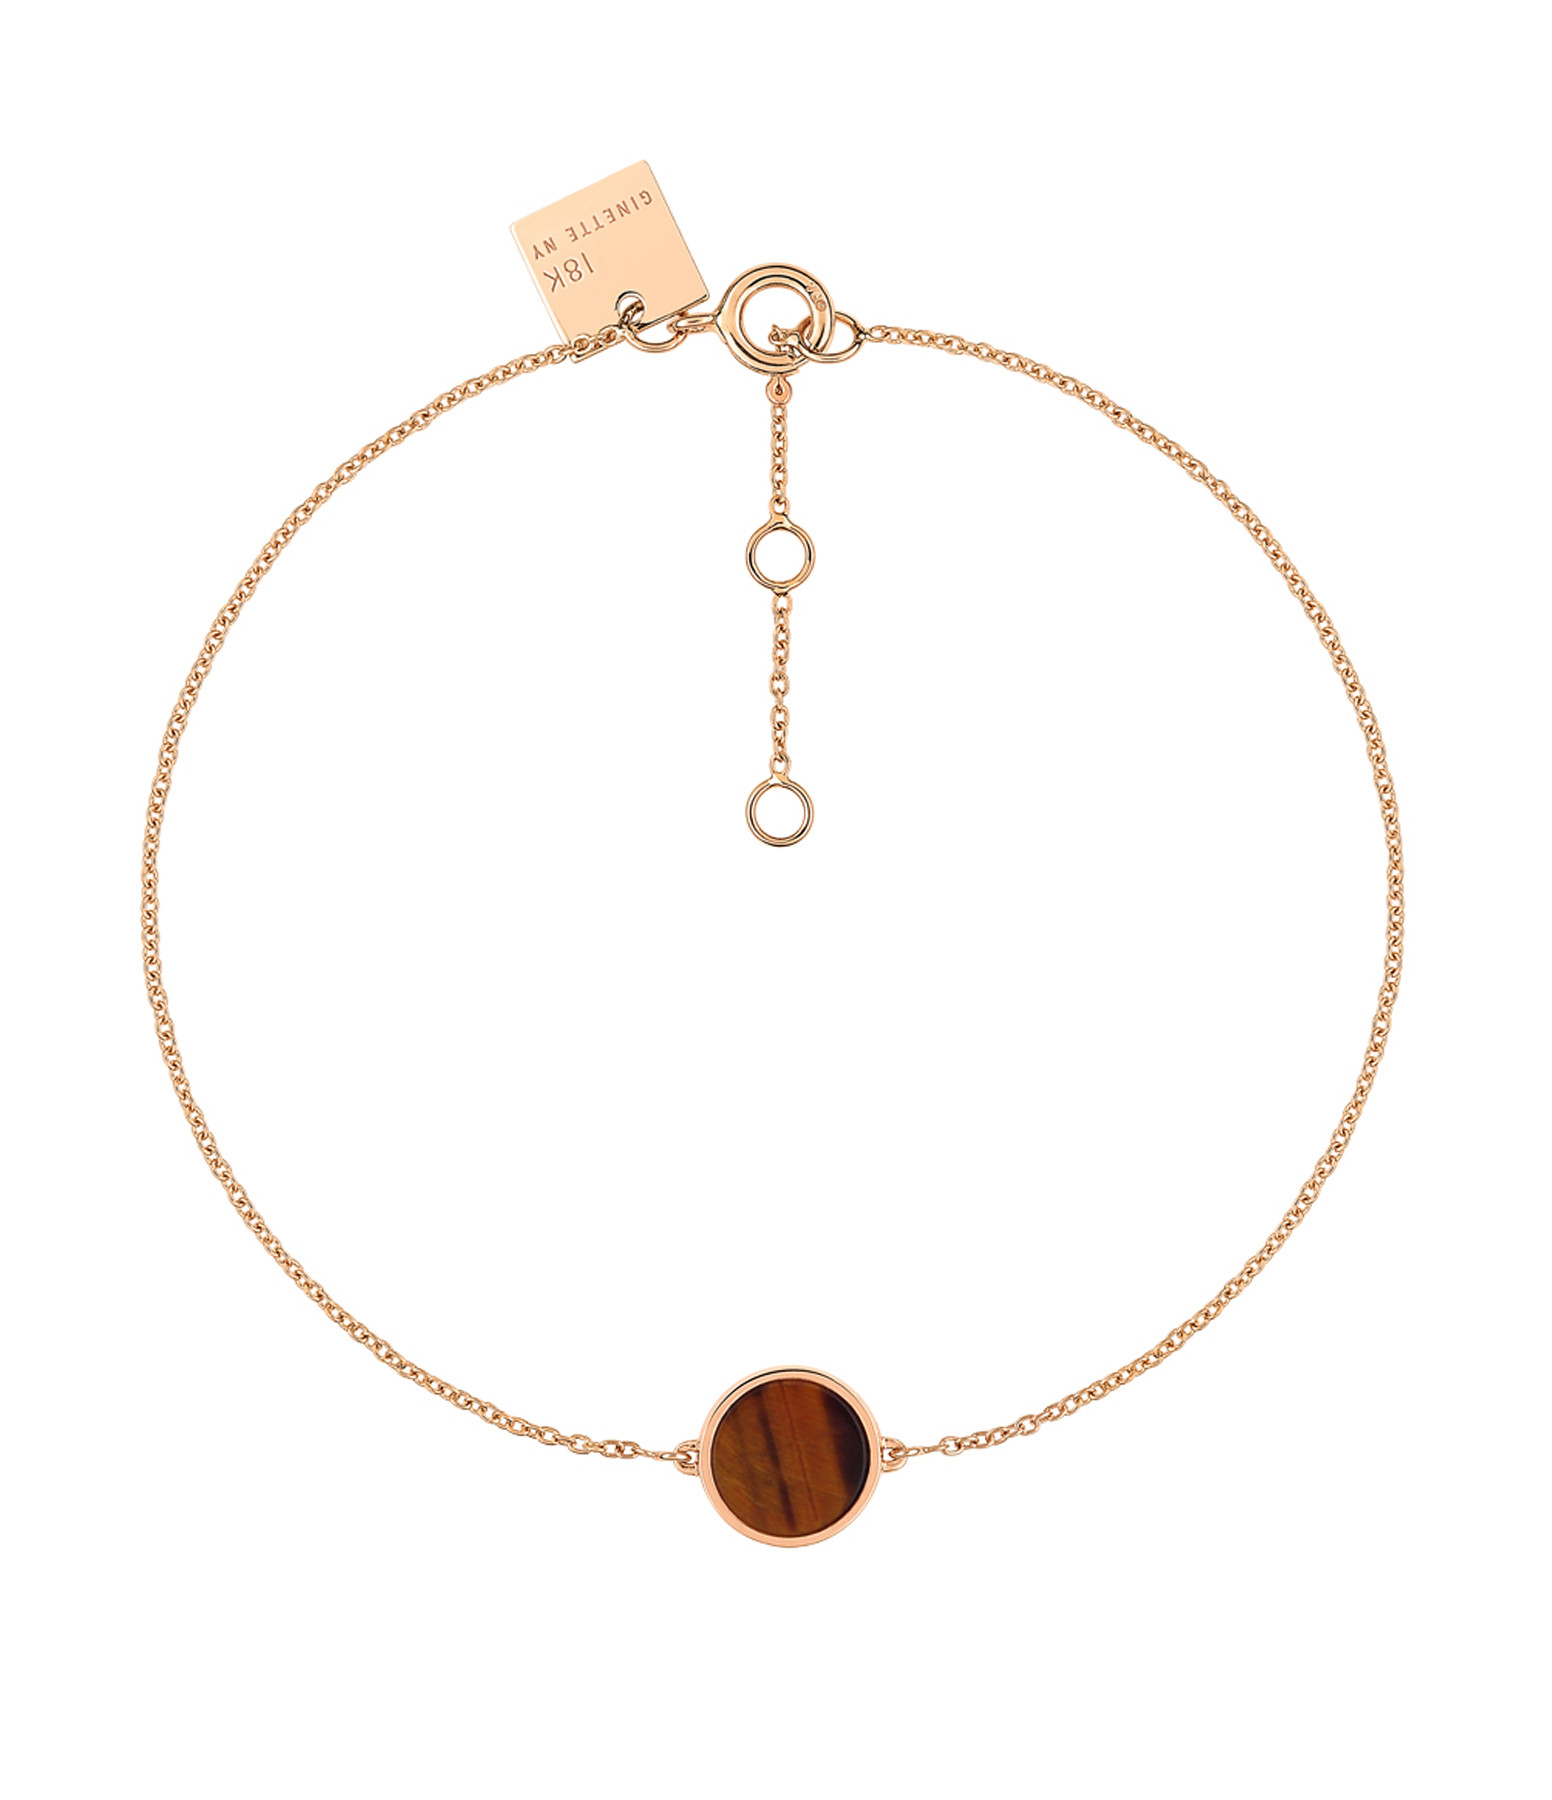 GINETTE NY - Bracelet Ever Mini Disc Or Rose Œil de Tigre